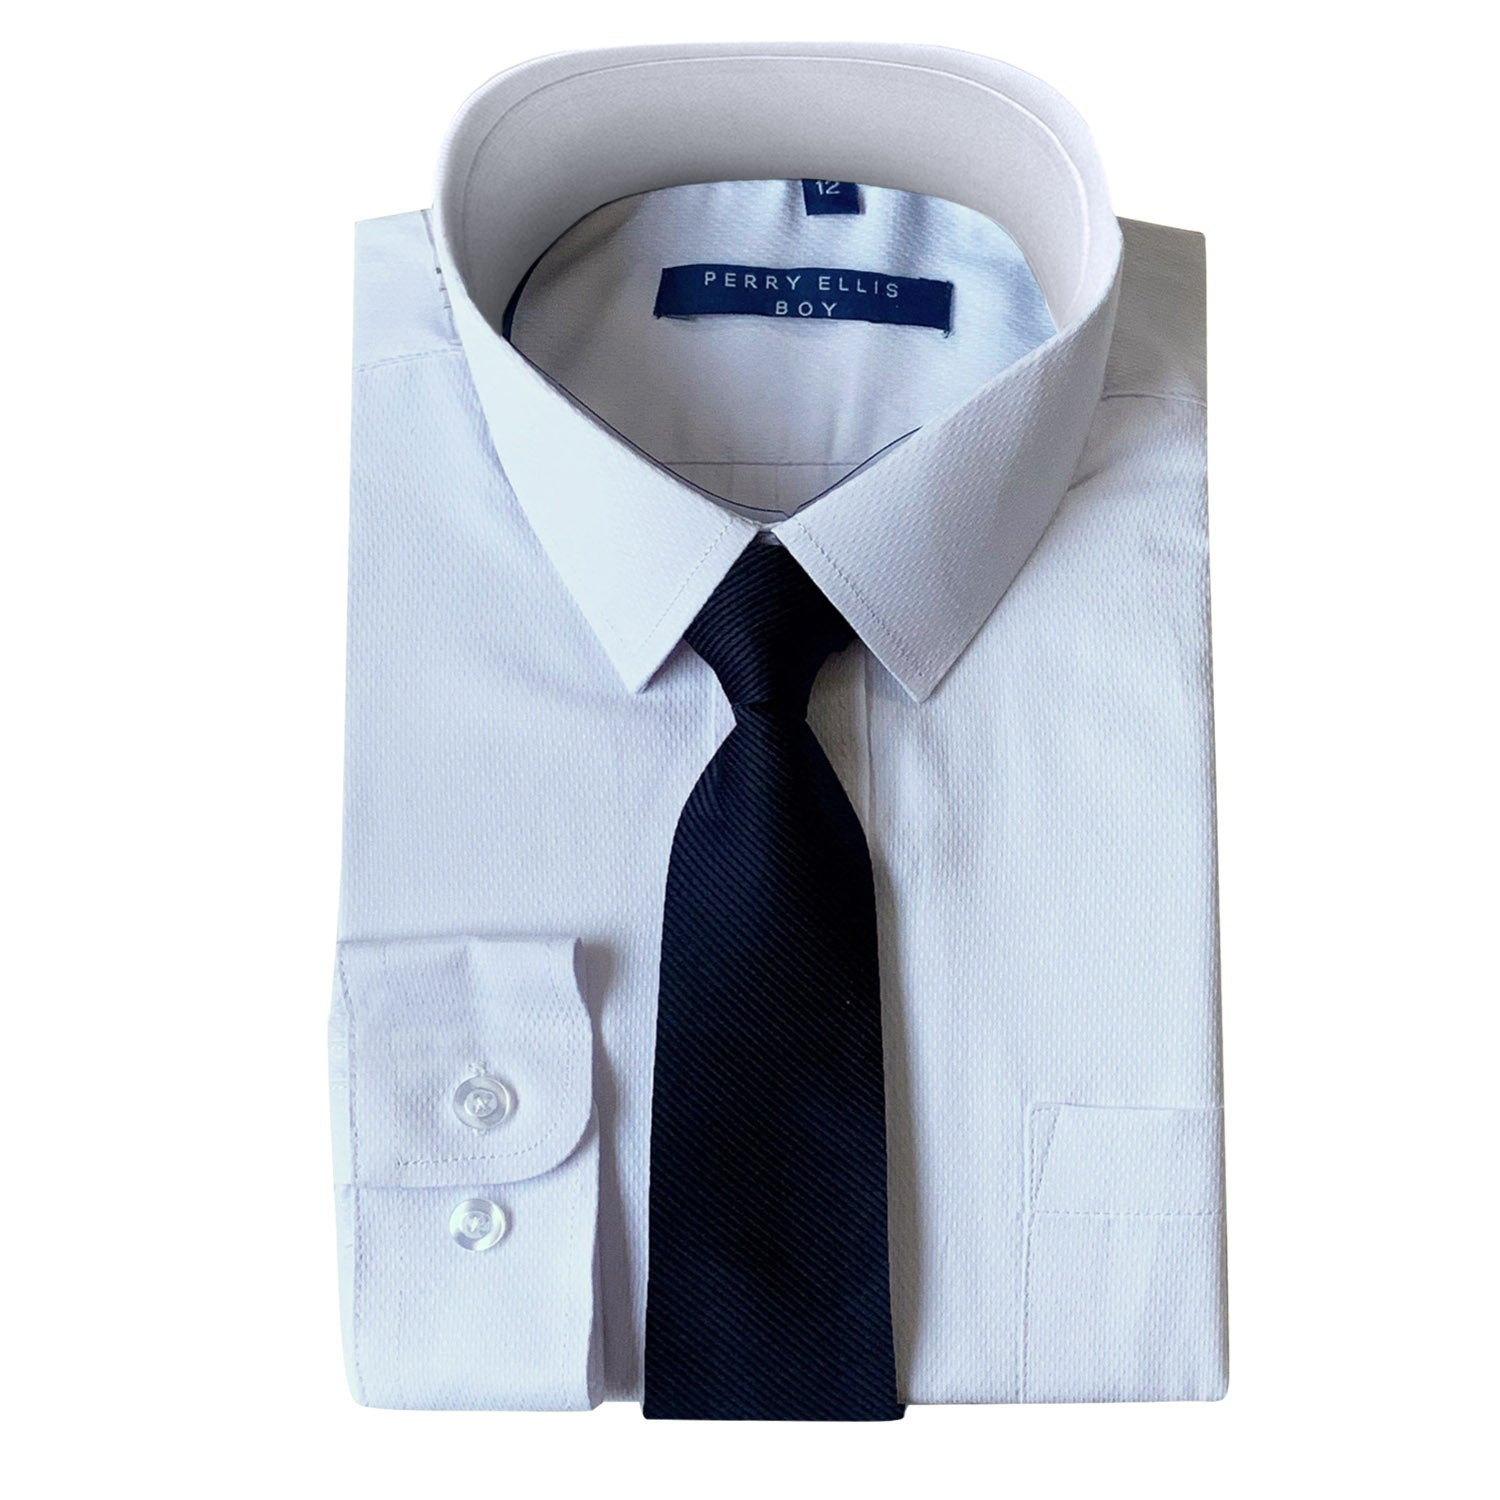 Perry Ellis Boys Dress Shirts w Navy Tie Solid Shirts w Colored Tie